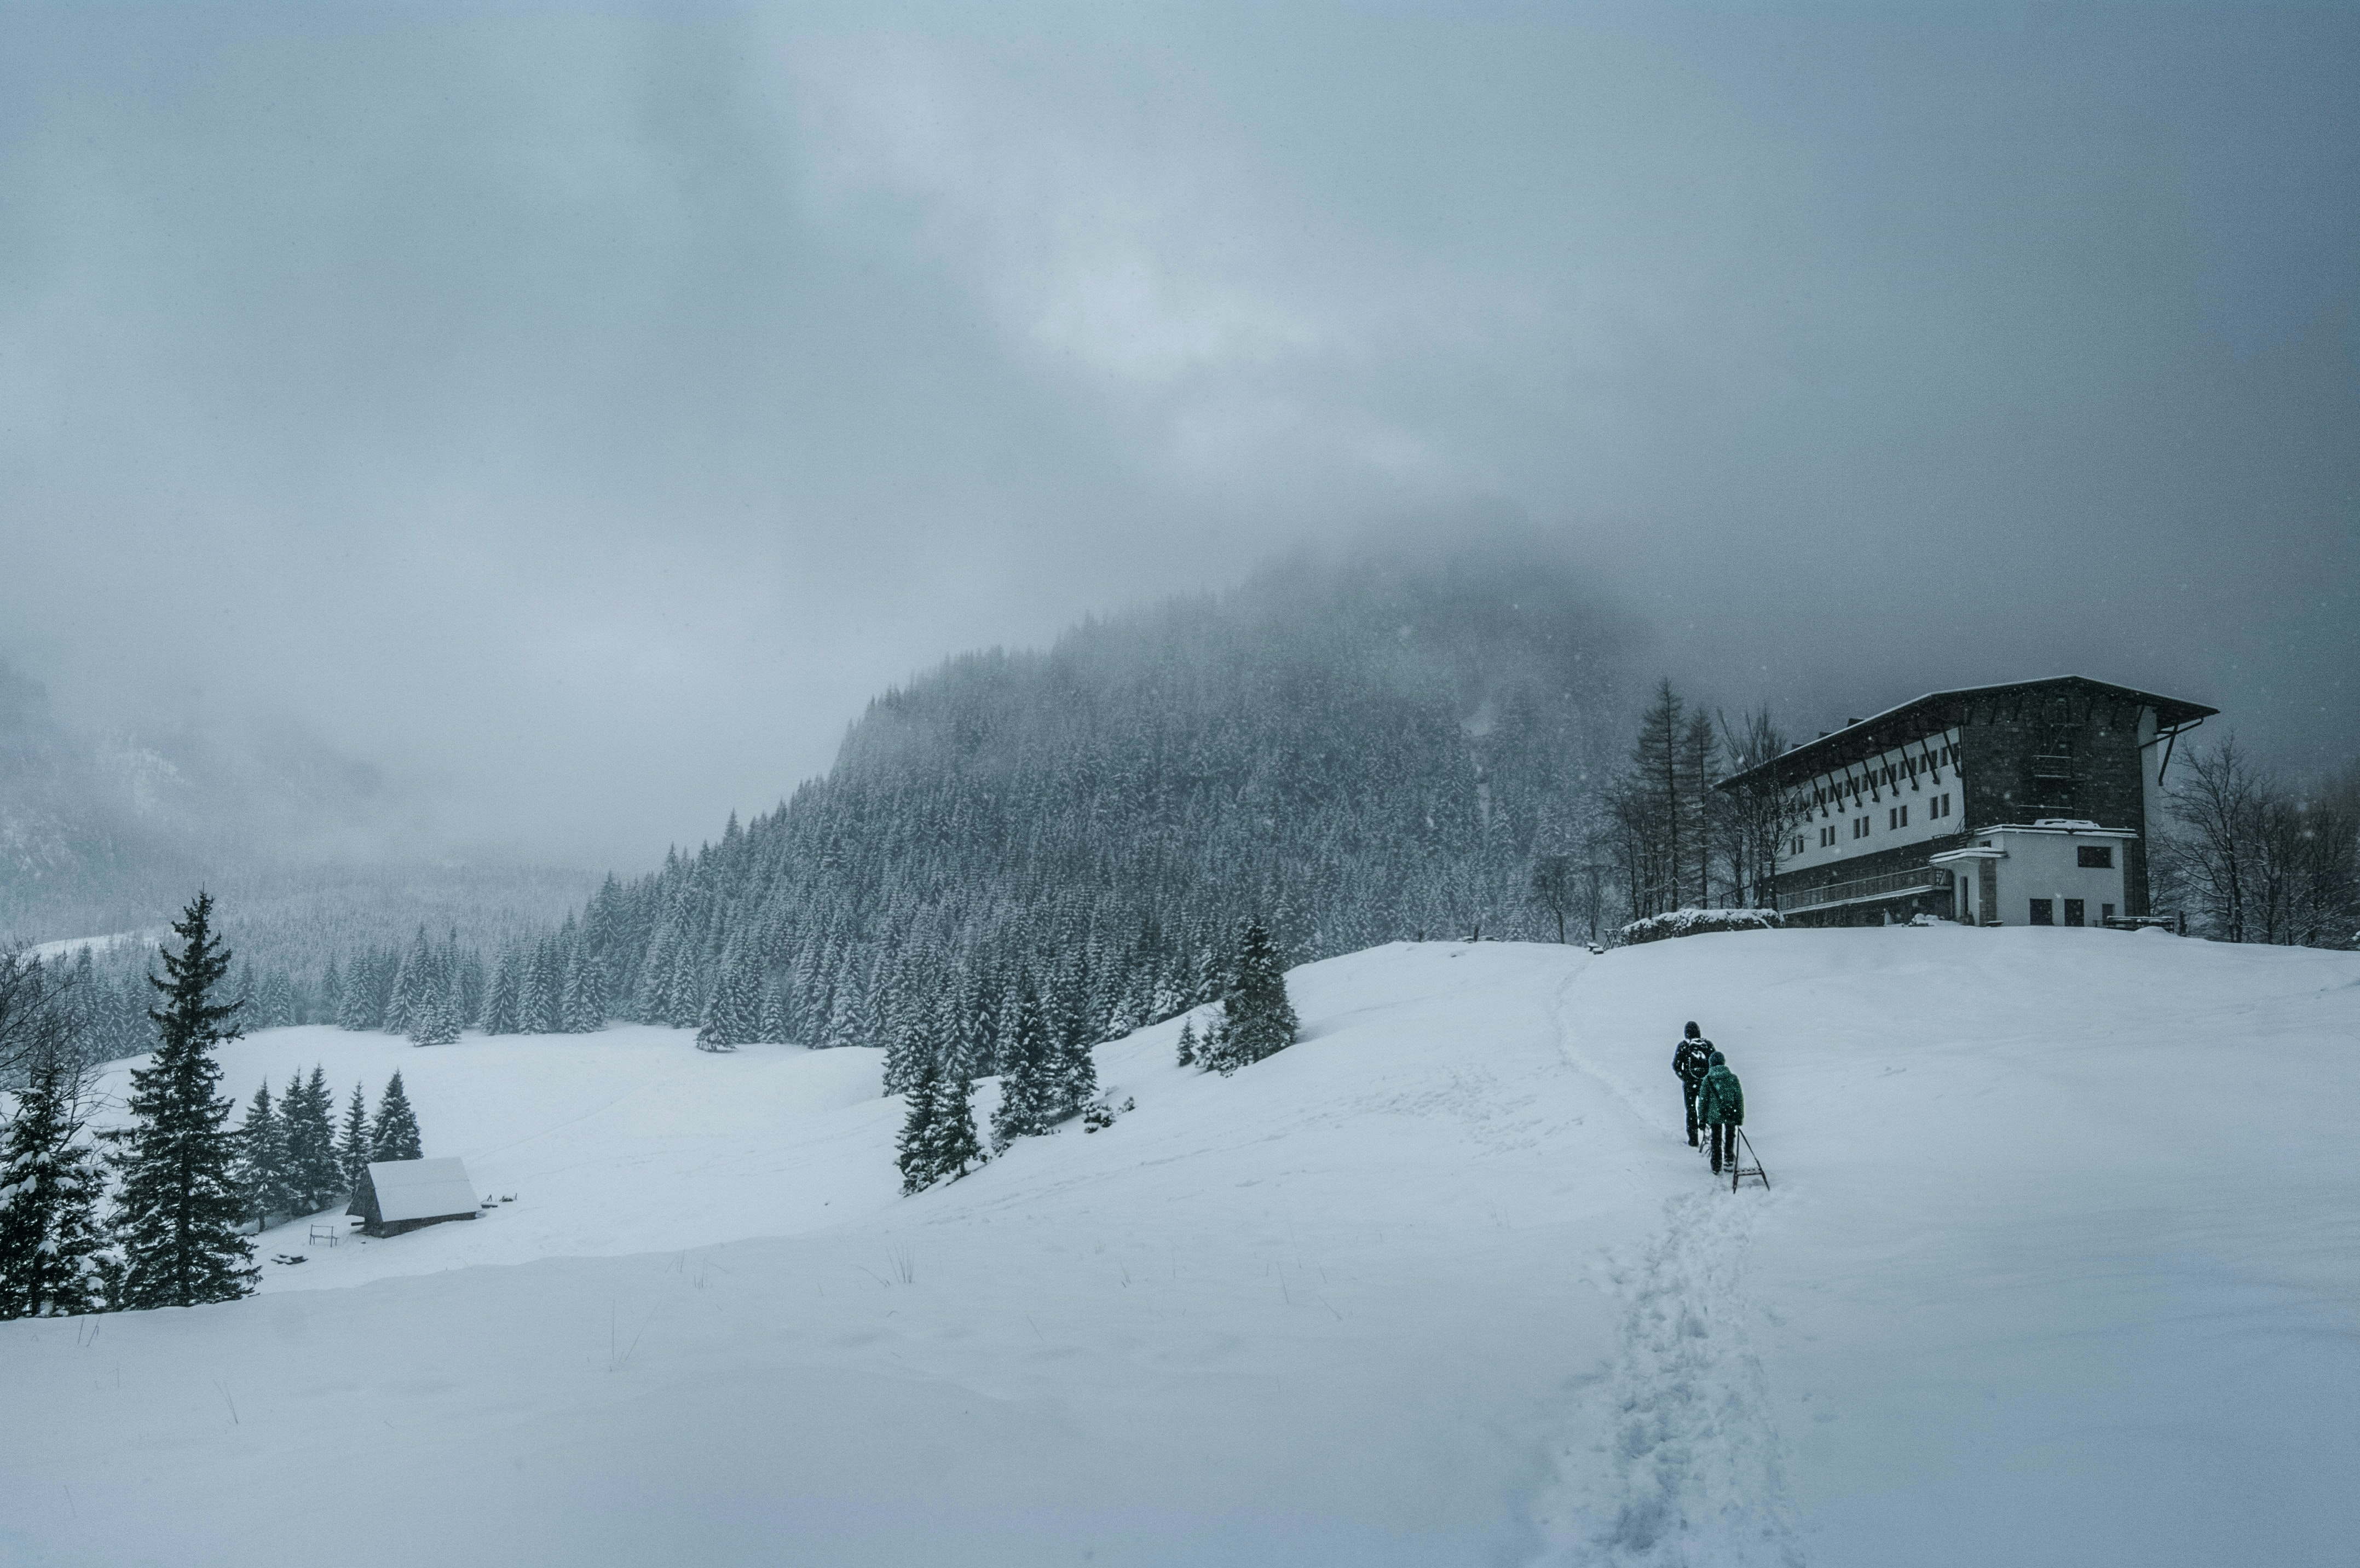 two persons walking on snow near concrete house under nimbus clouds